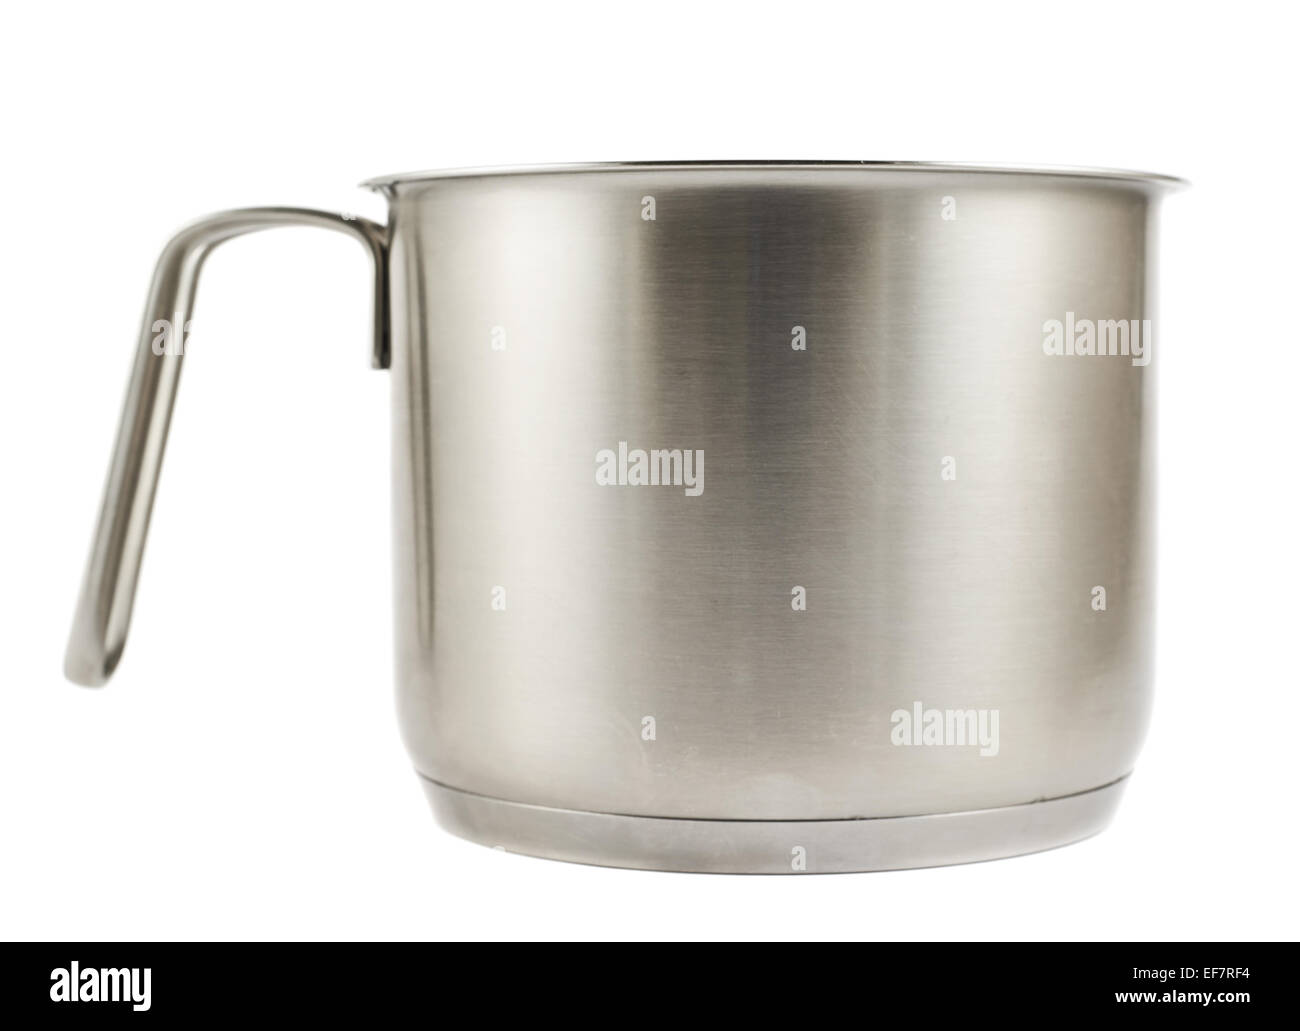 Stainless steel cooking pot isolated - Stock Image